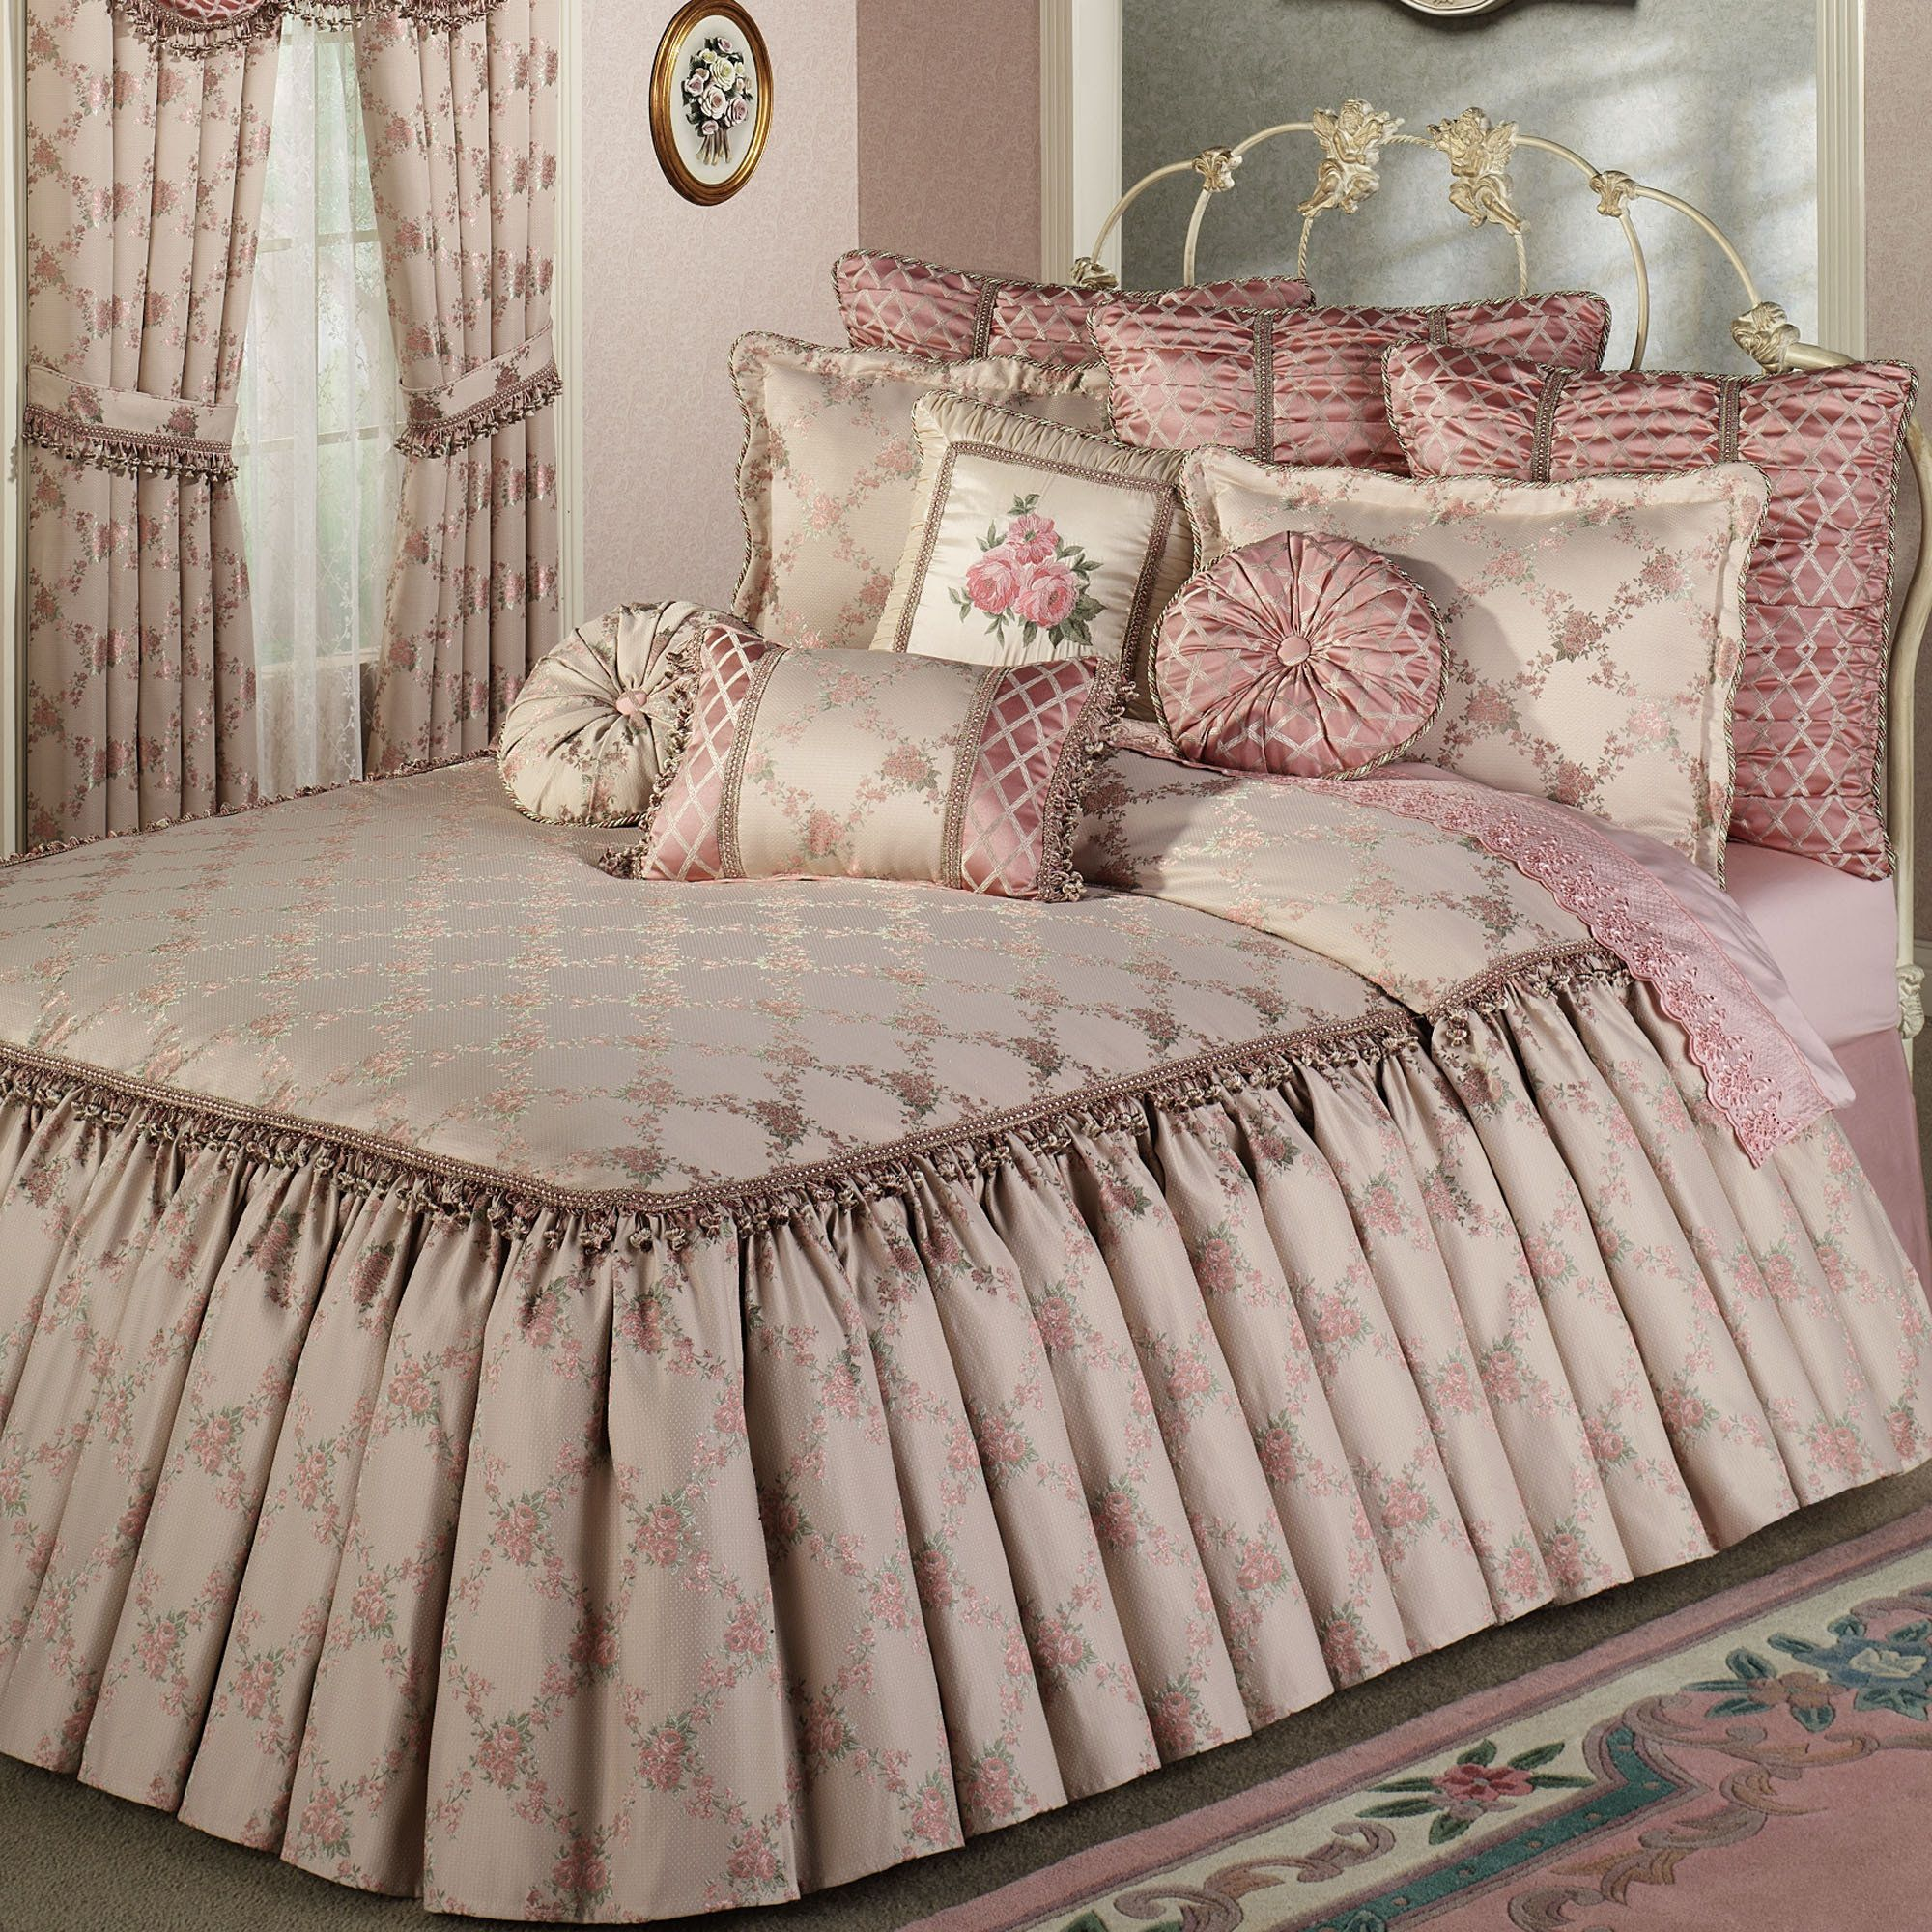 Special Comforter Sets Thomasville Comforter Sets Sheet Sets Draperies Bedding Bedroom